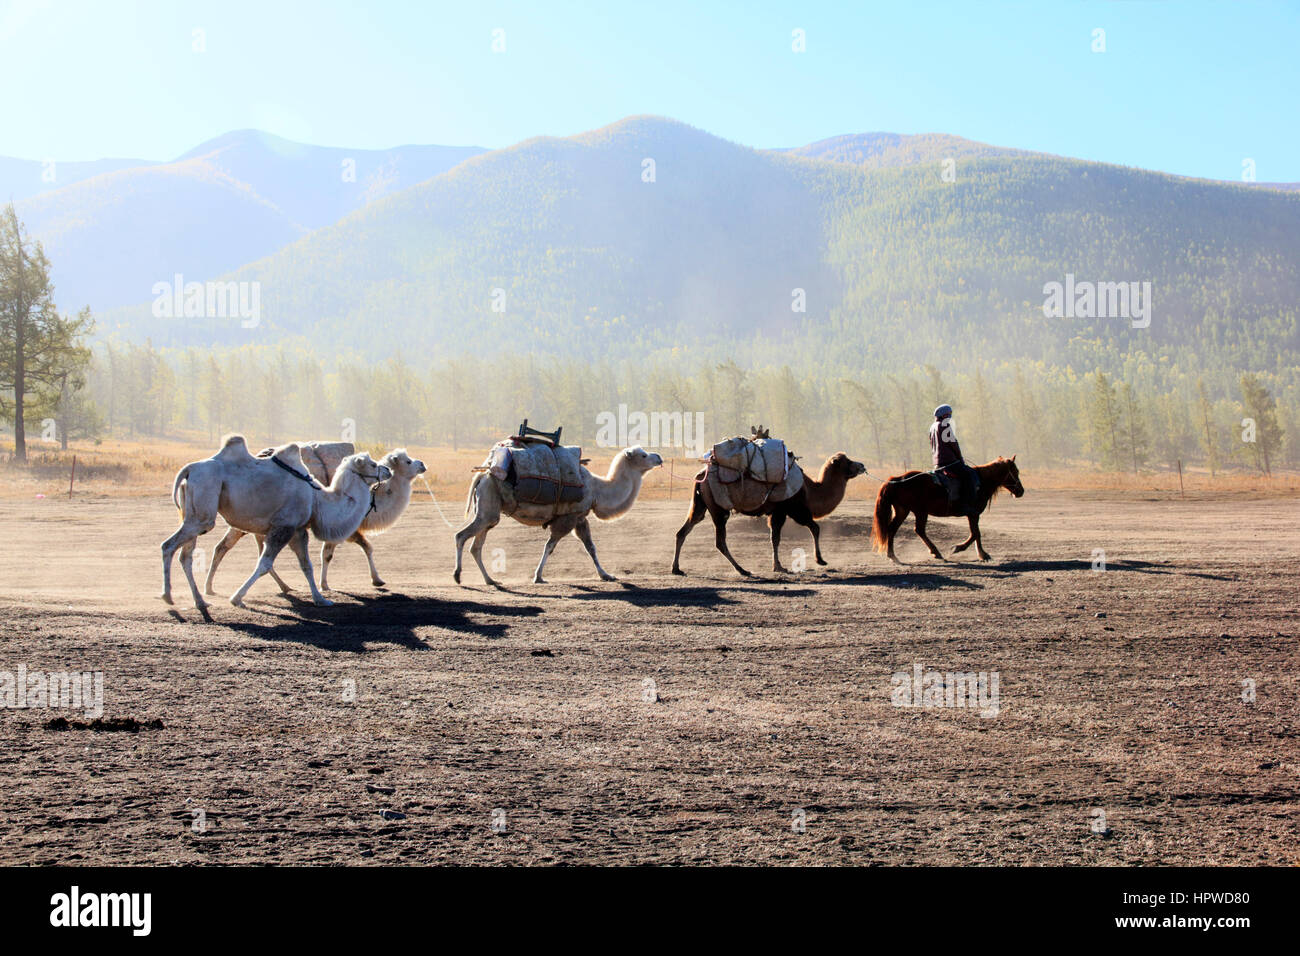 Camel Convoy - Stock Image